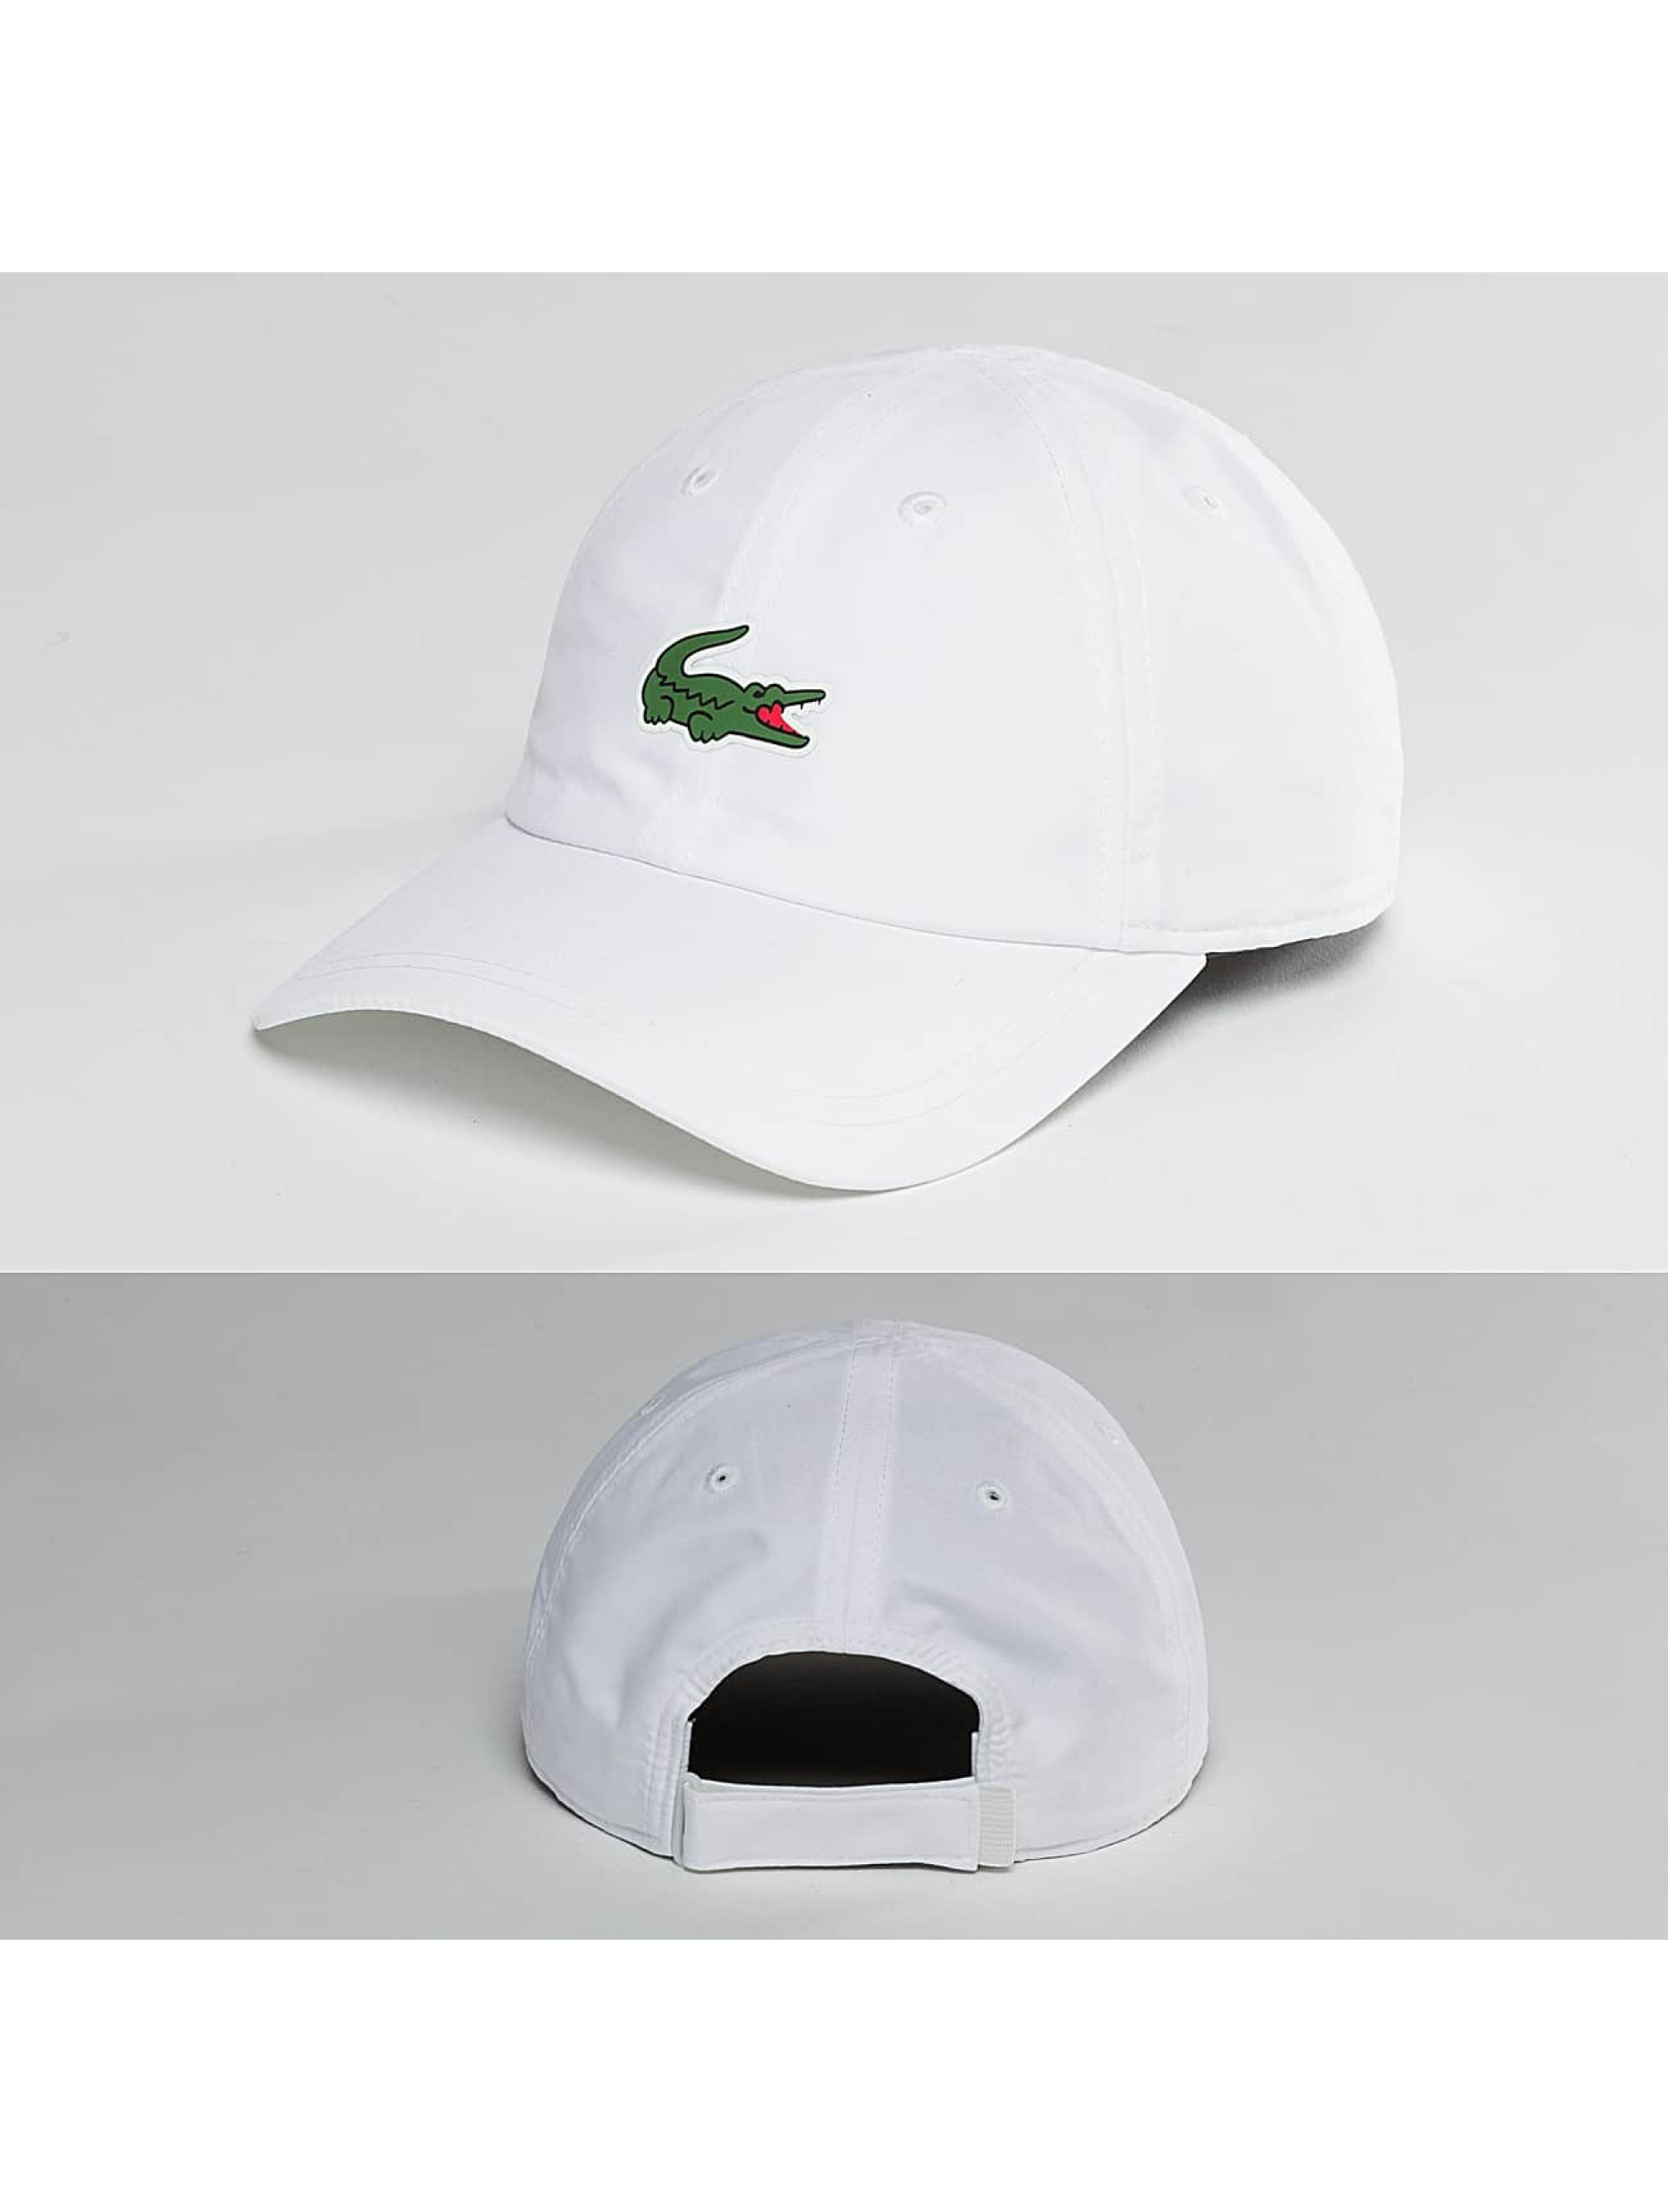 lacoste classic herren caps snapback cap classic. Black Bedroom Furniture Sets. Home Design Ideas